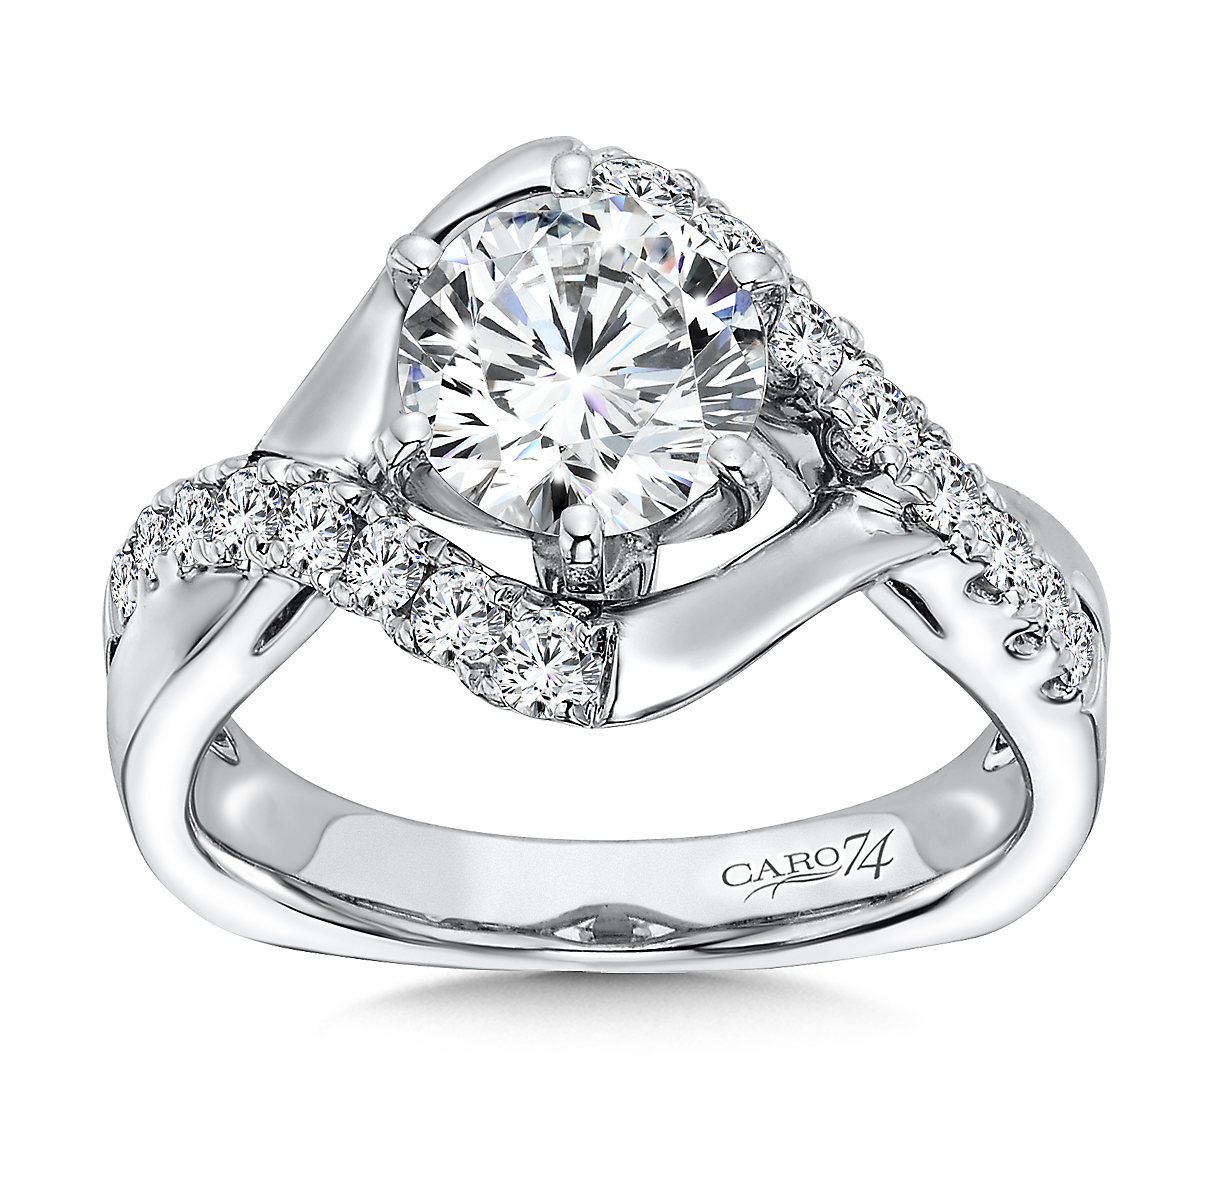 Wholesale Engagement Rings Dallas